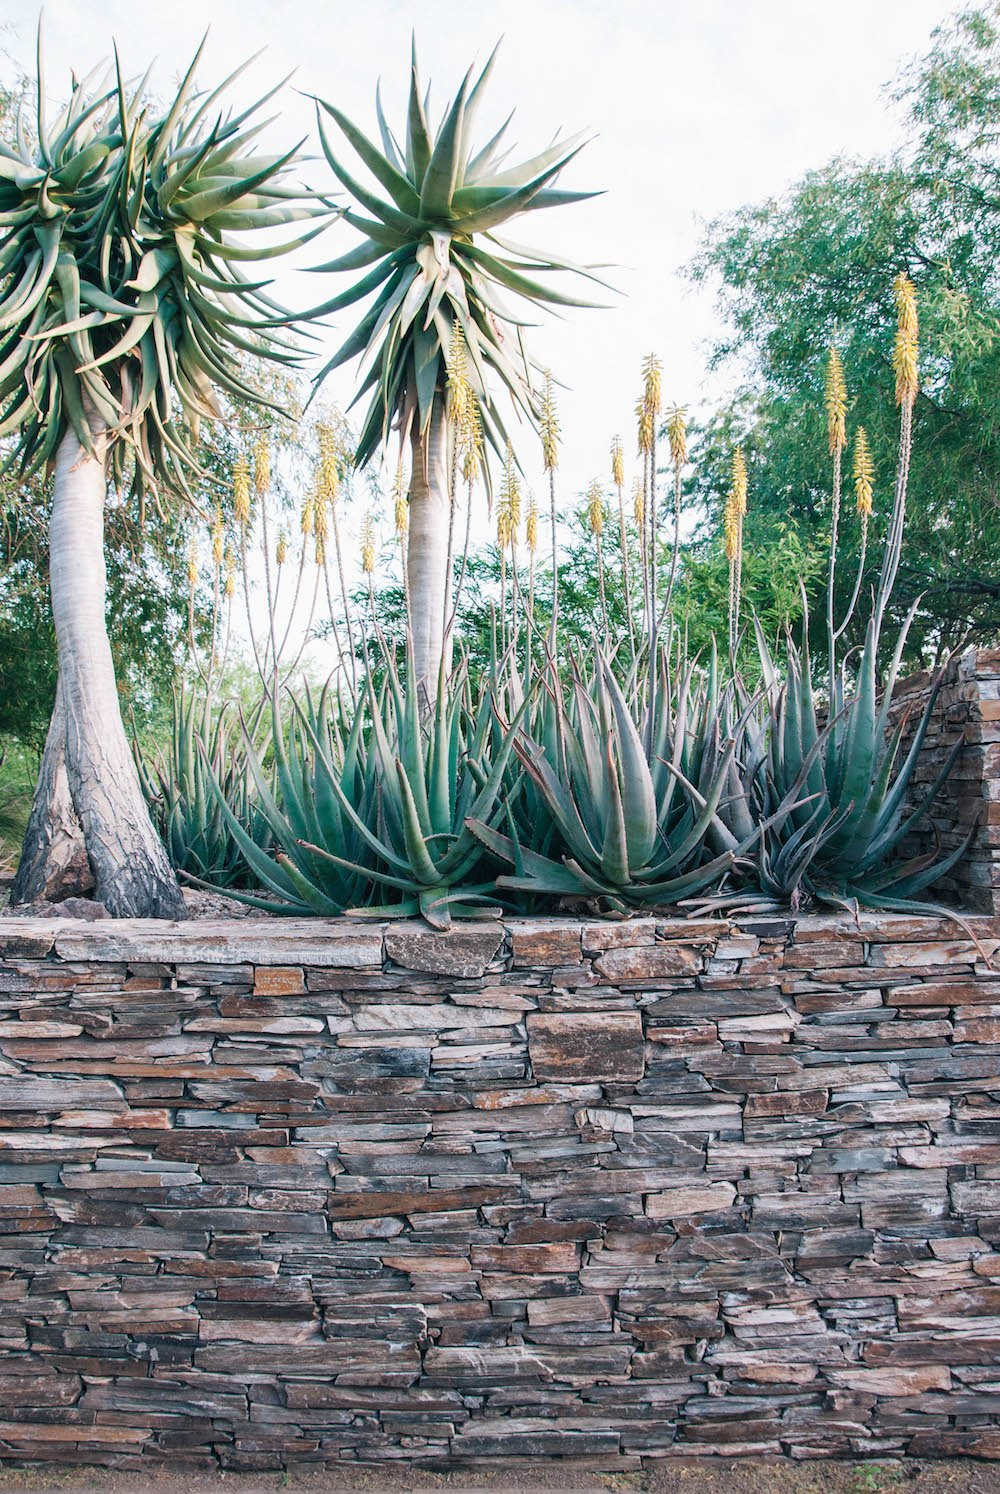 Tequila Tasting in Phoenix, Arizona - Agave on the Rocks